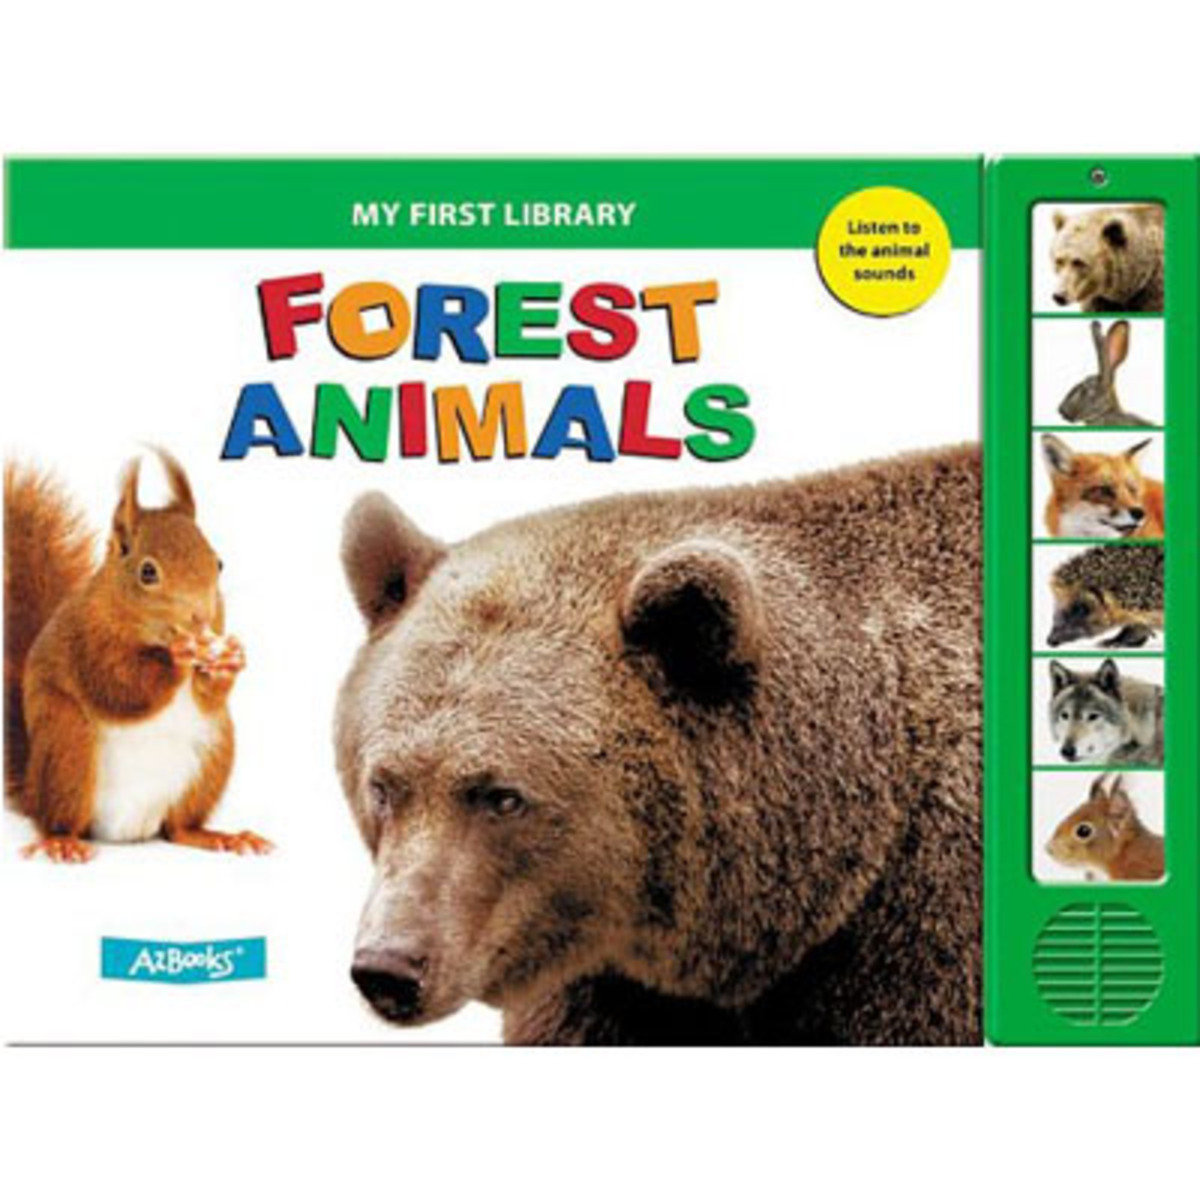 Forest Animals (My First Library) 9781618891204